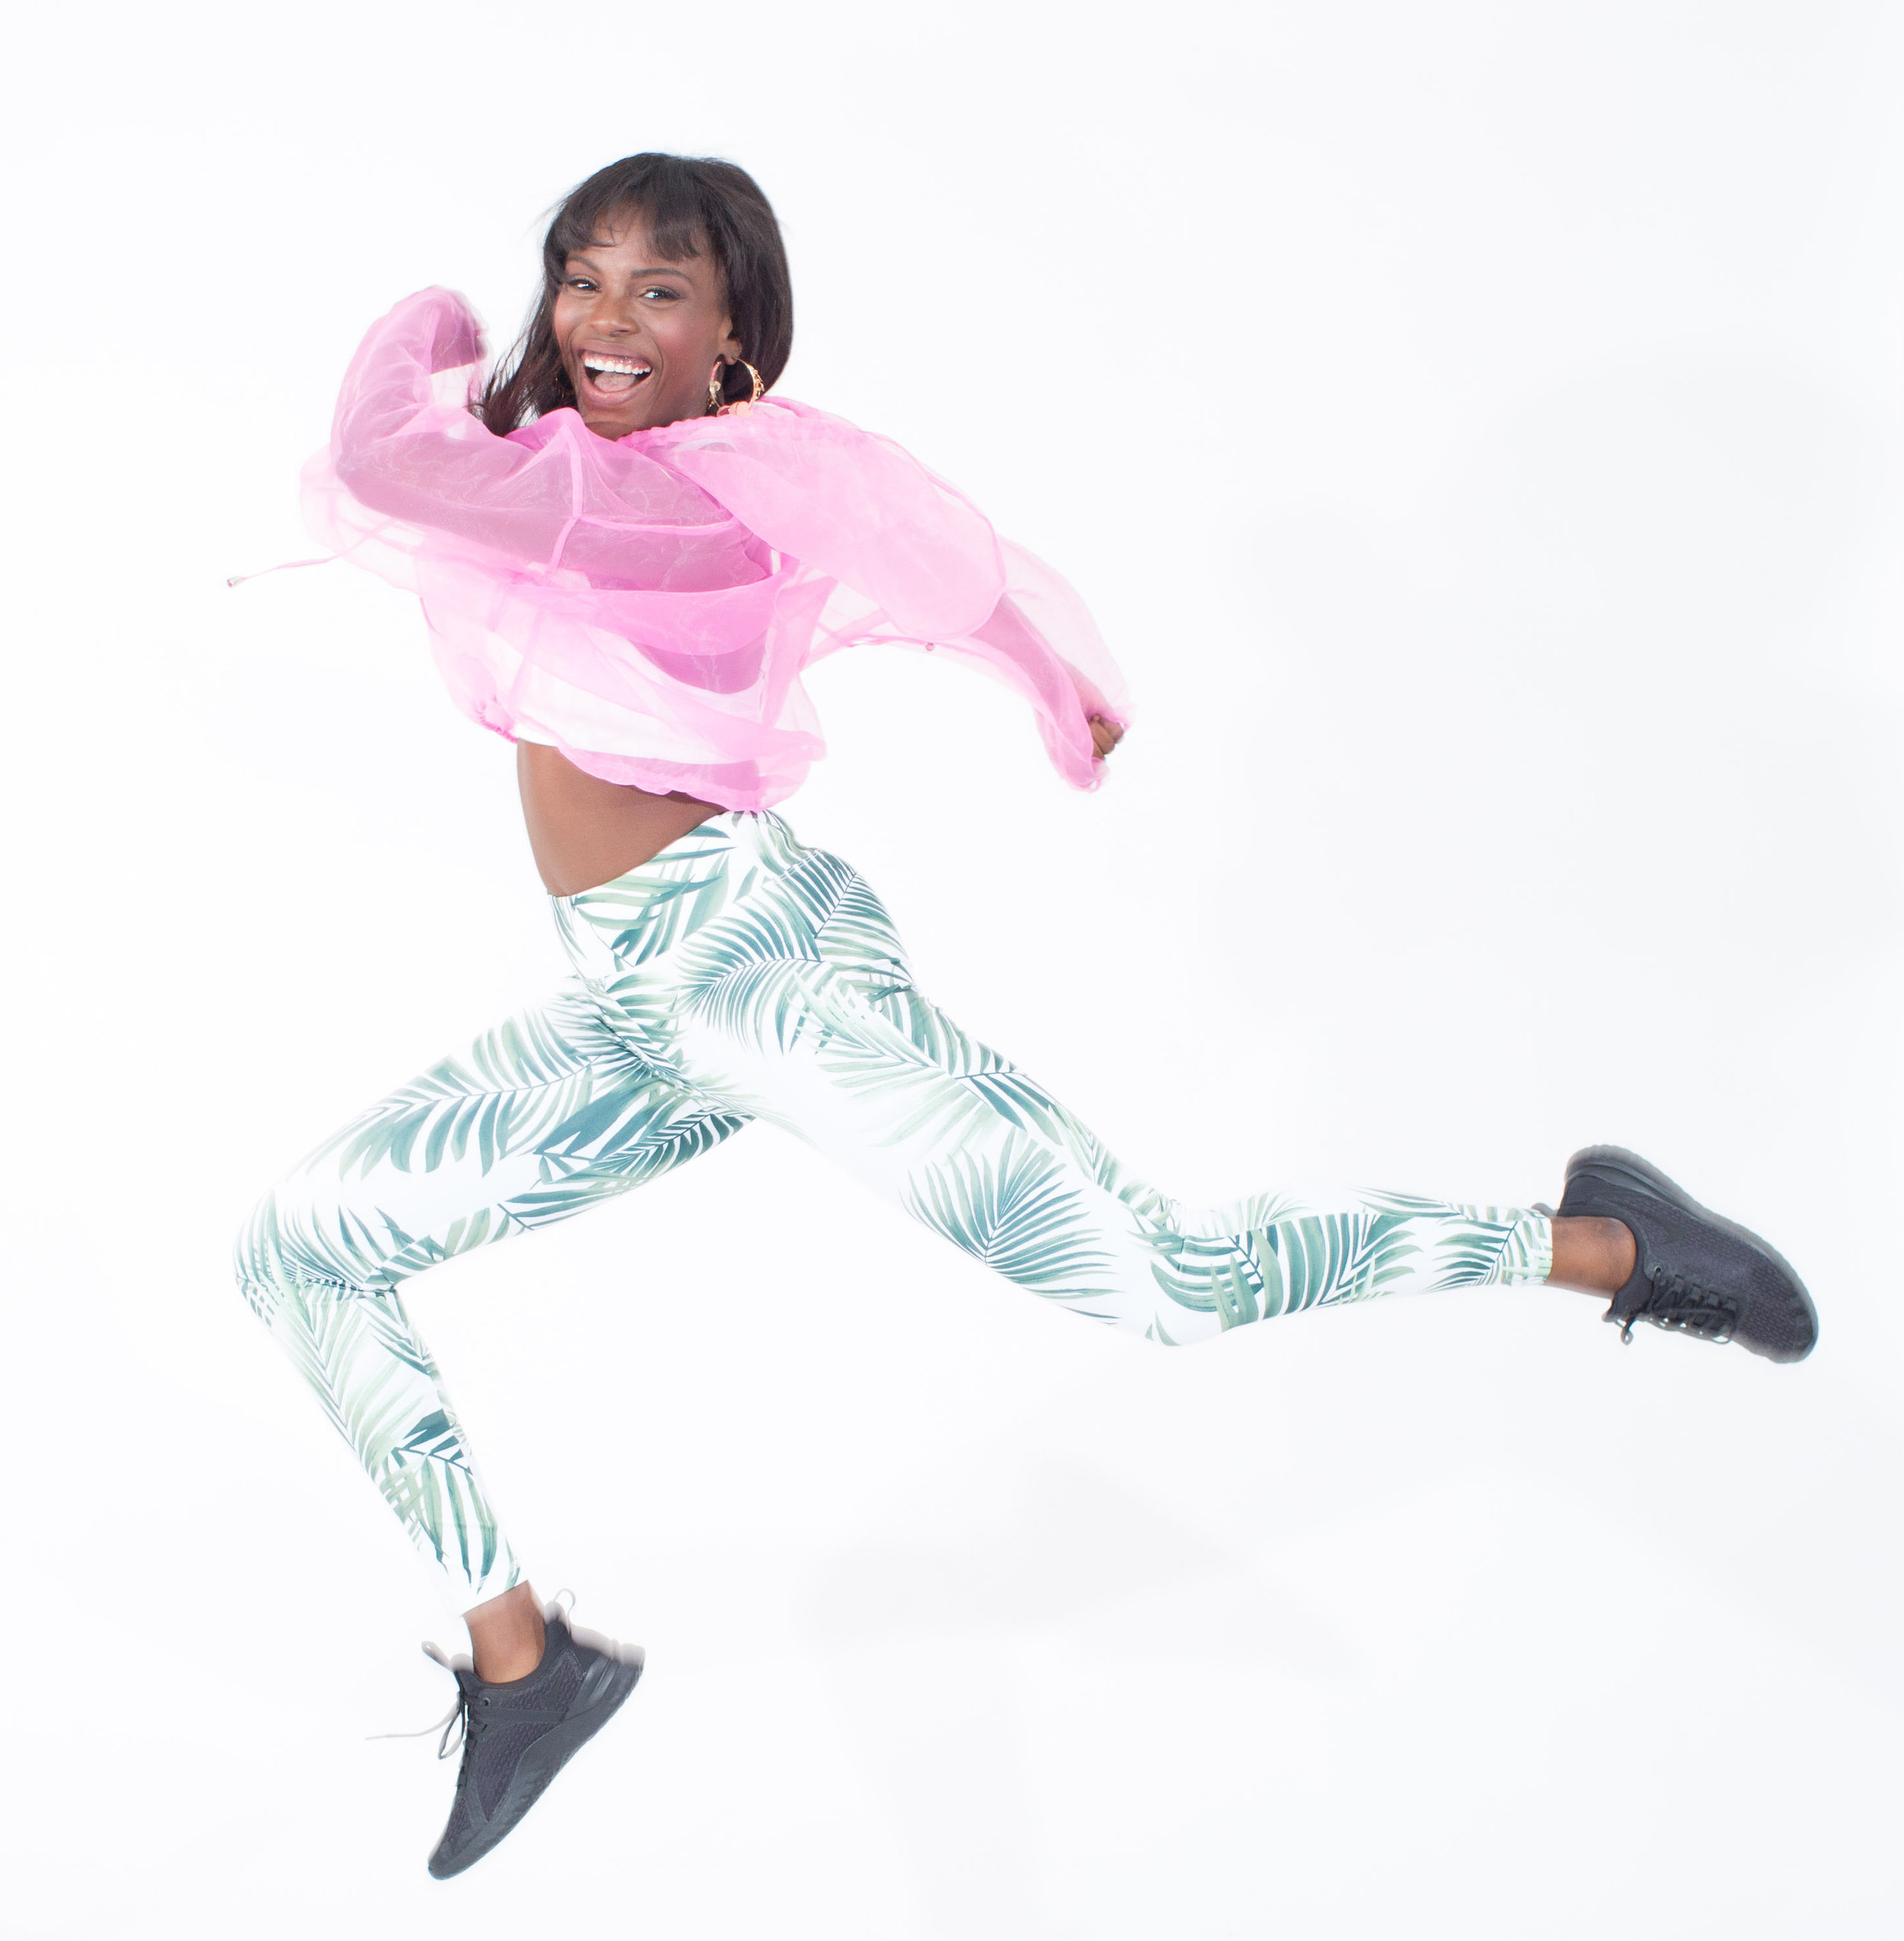 OWOADE: THE PICK-ME-UP PRINCESS - Get up, show out and get into it